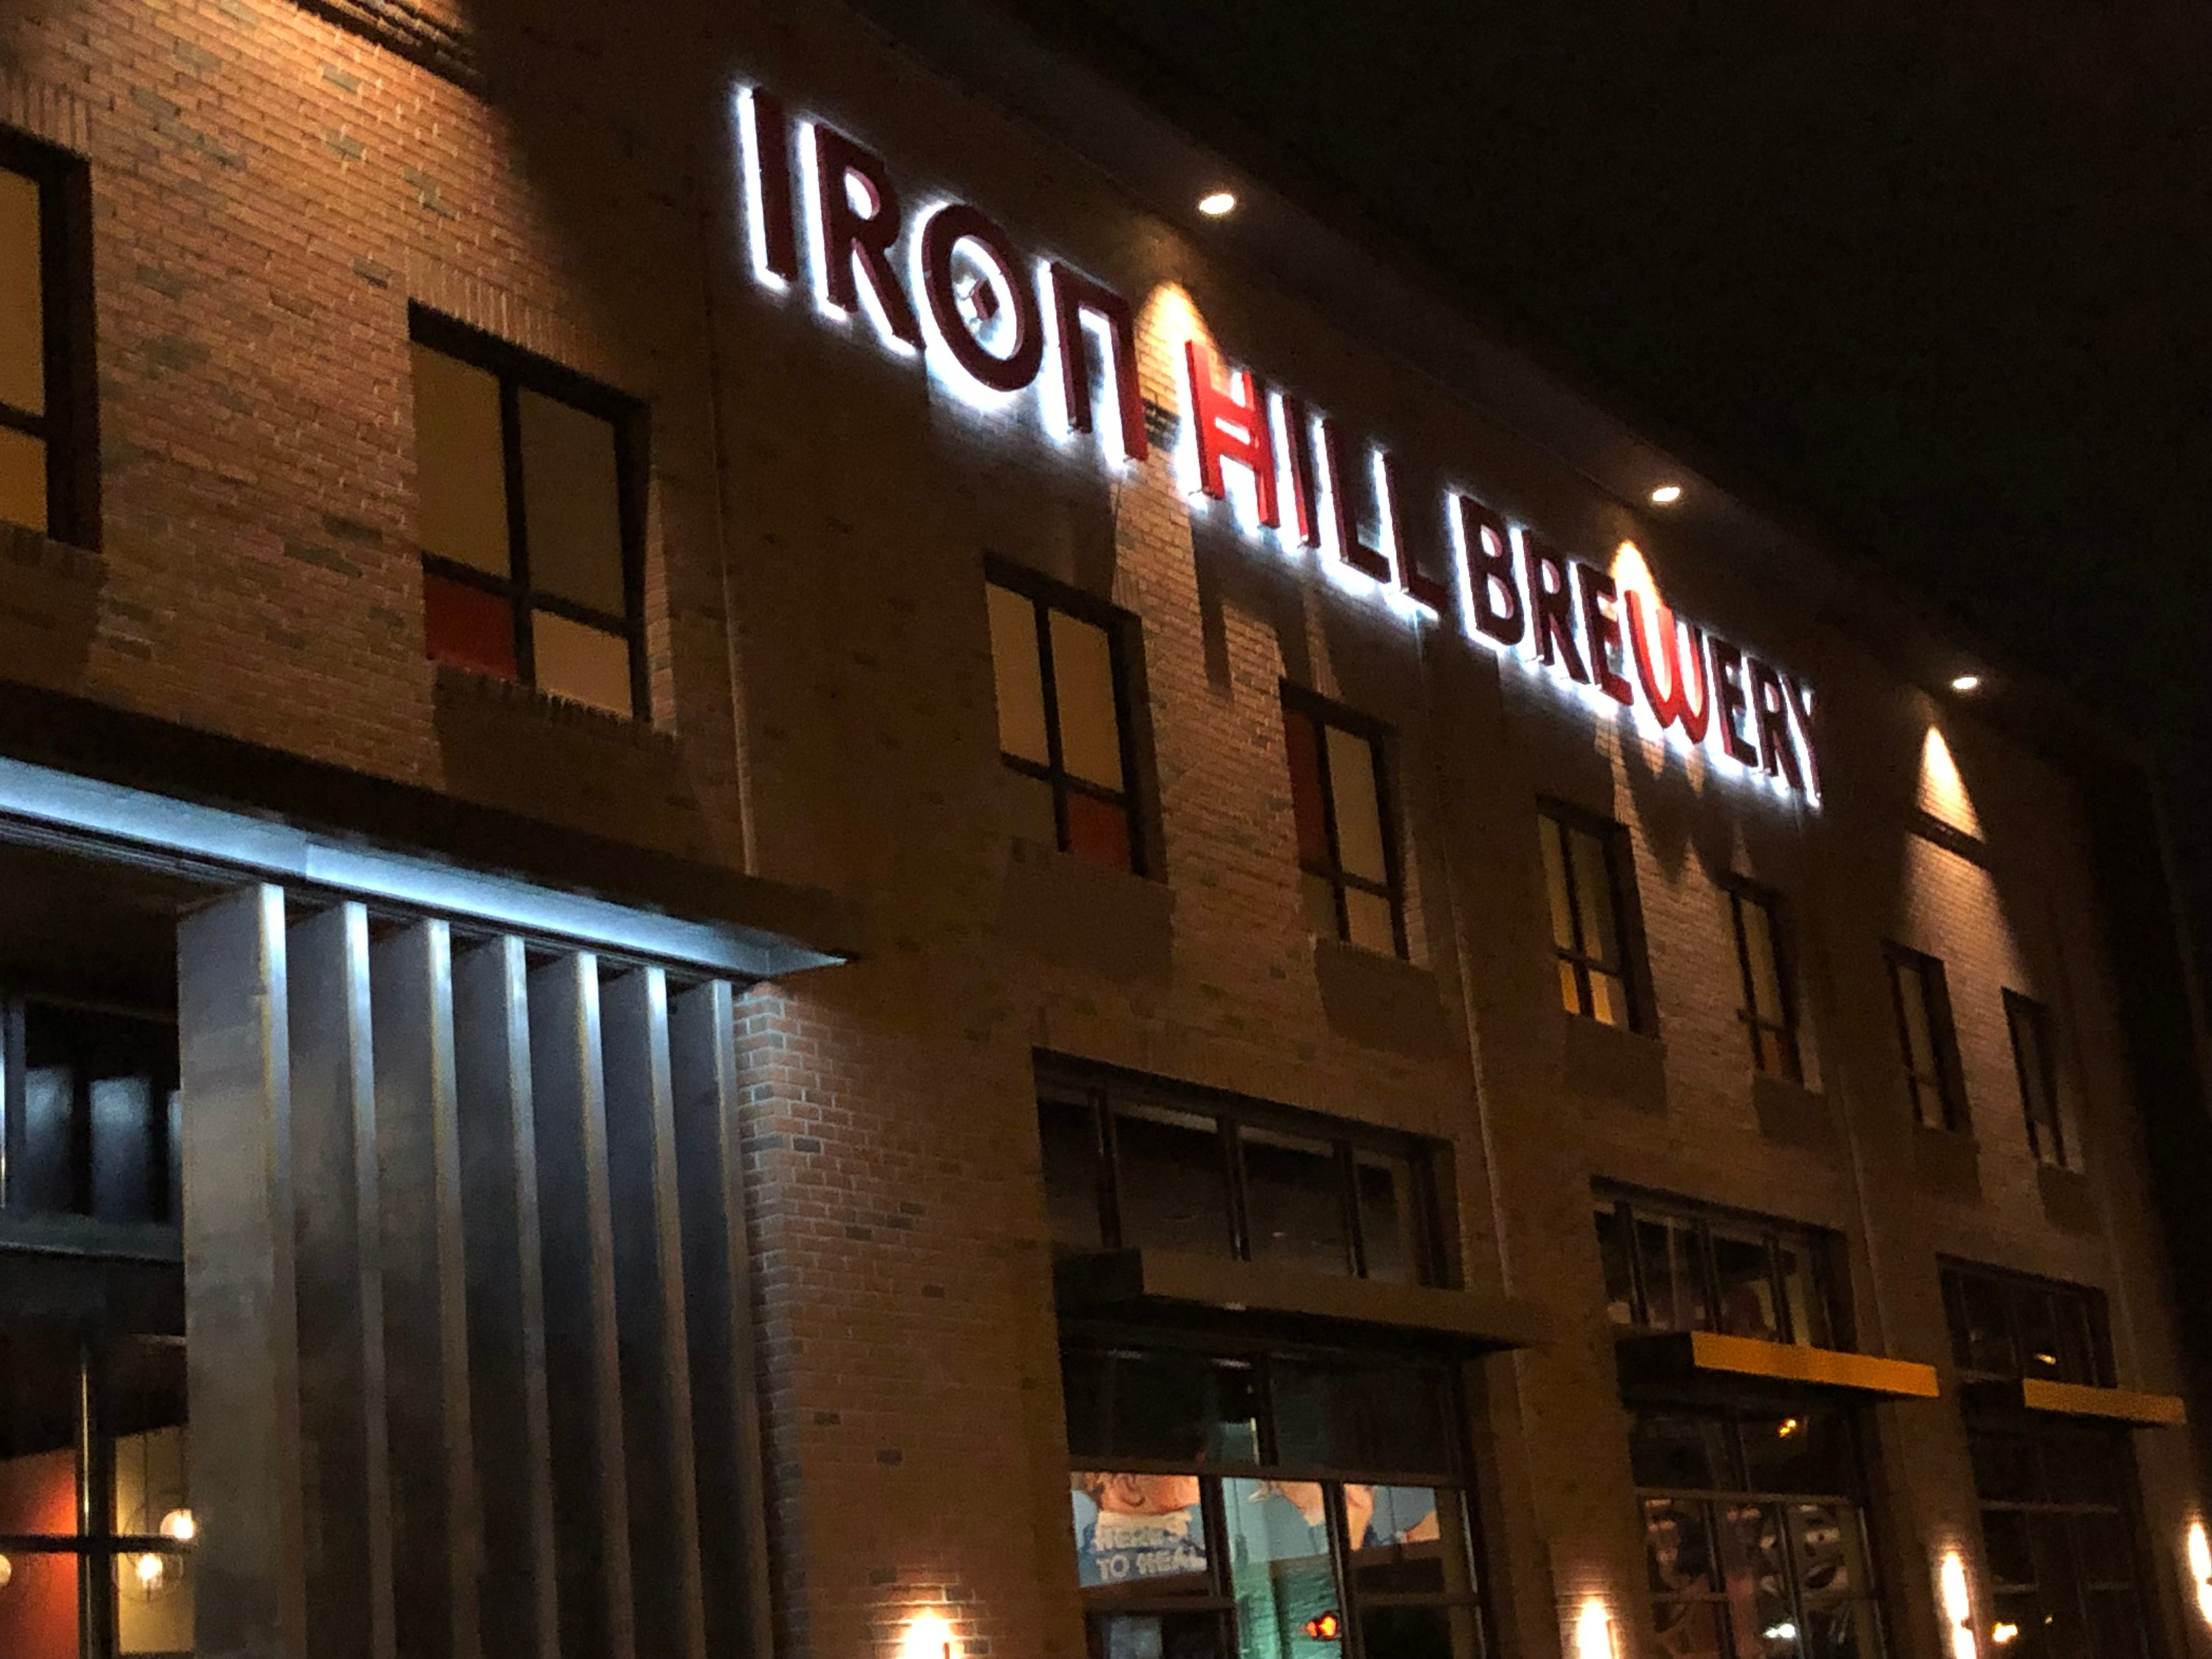 Iron Hill Brewery & Restaurant is located in Hershey Towne Square and is now open.